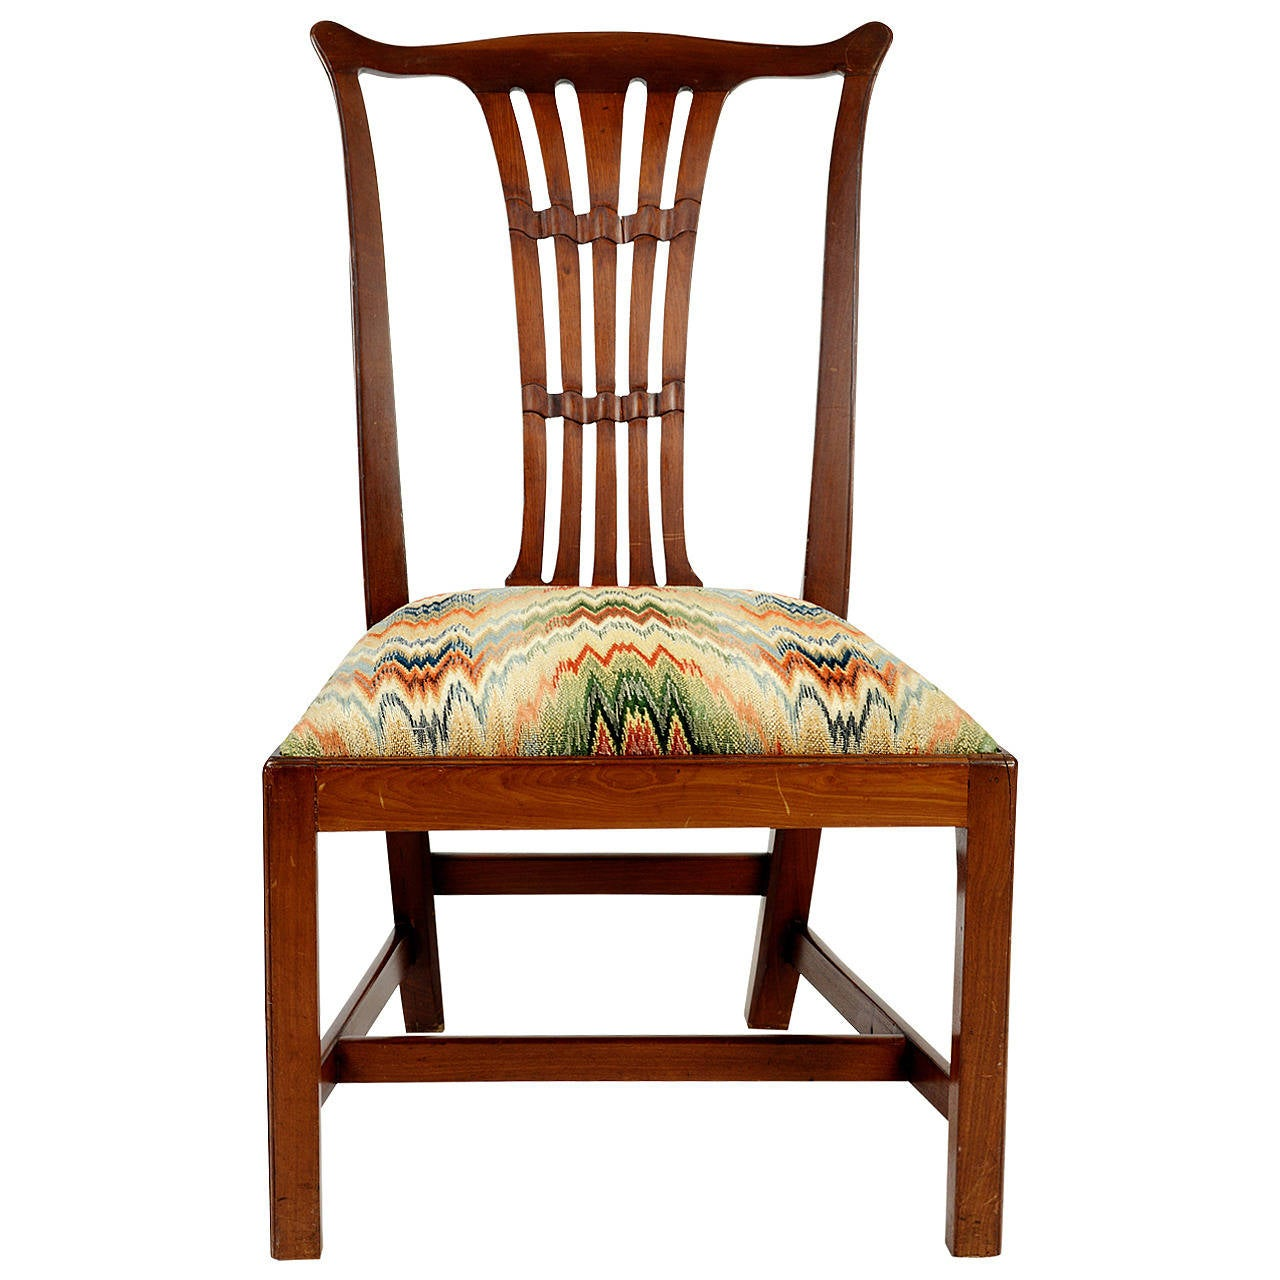 English Mahogany Side Chair in the Chippendale Style, 19th Century